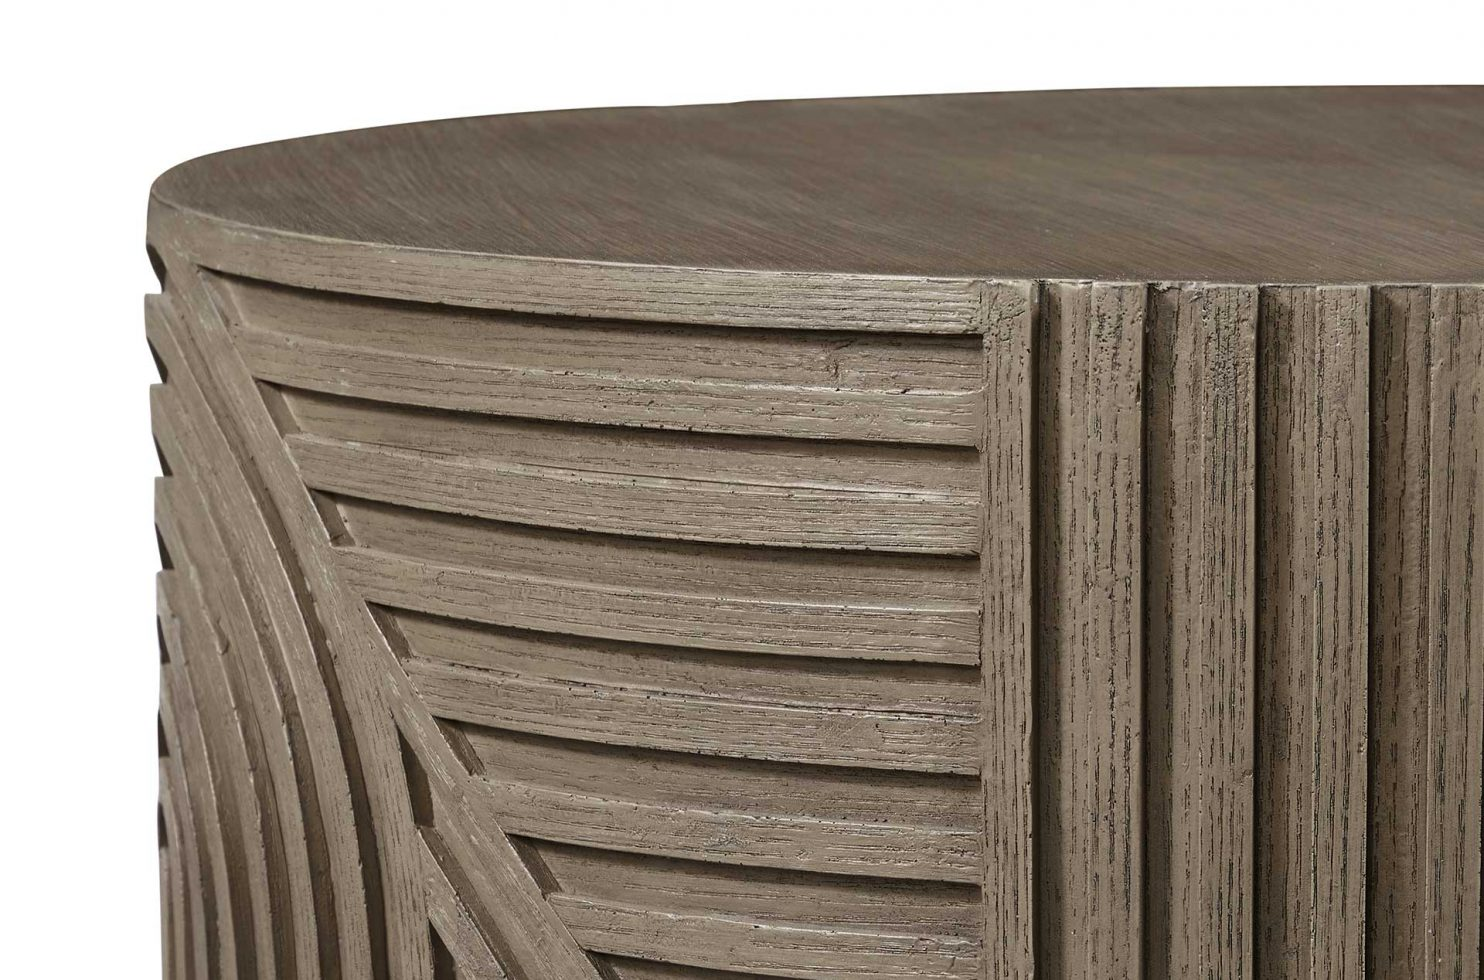 prov frp serenity energy textured round table S1568804146 dtl1 web